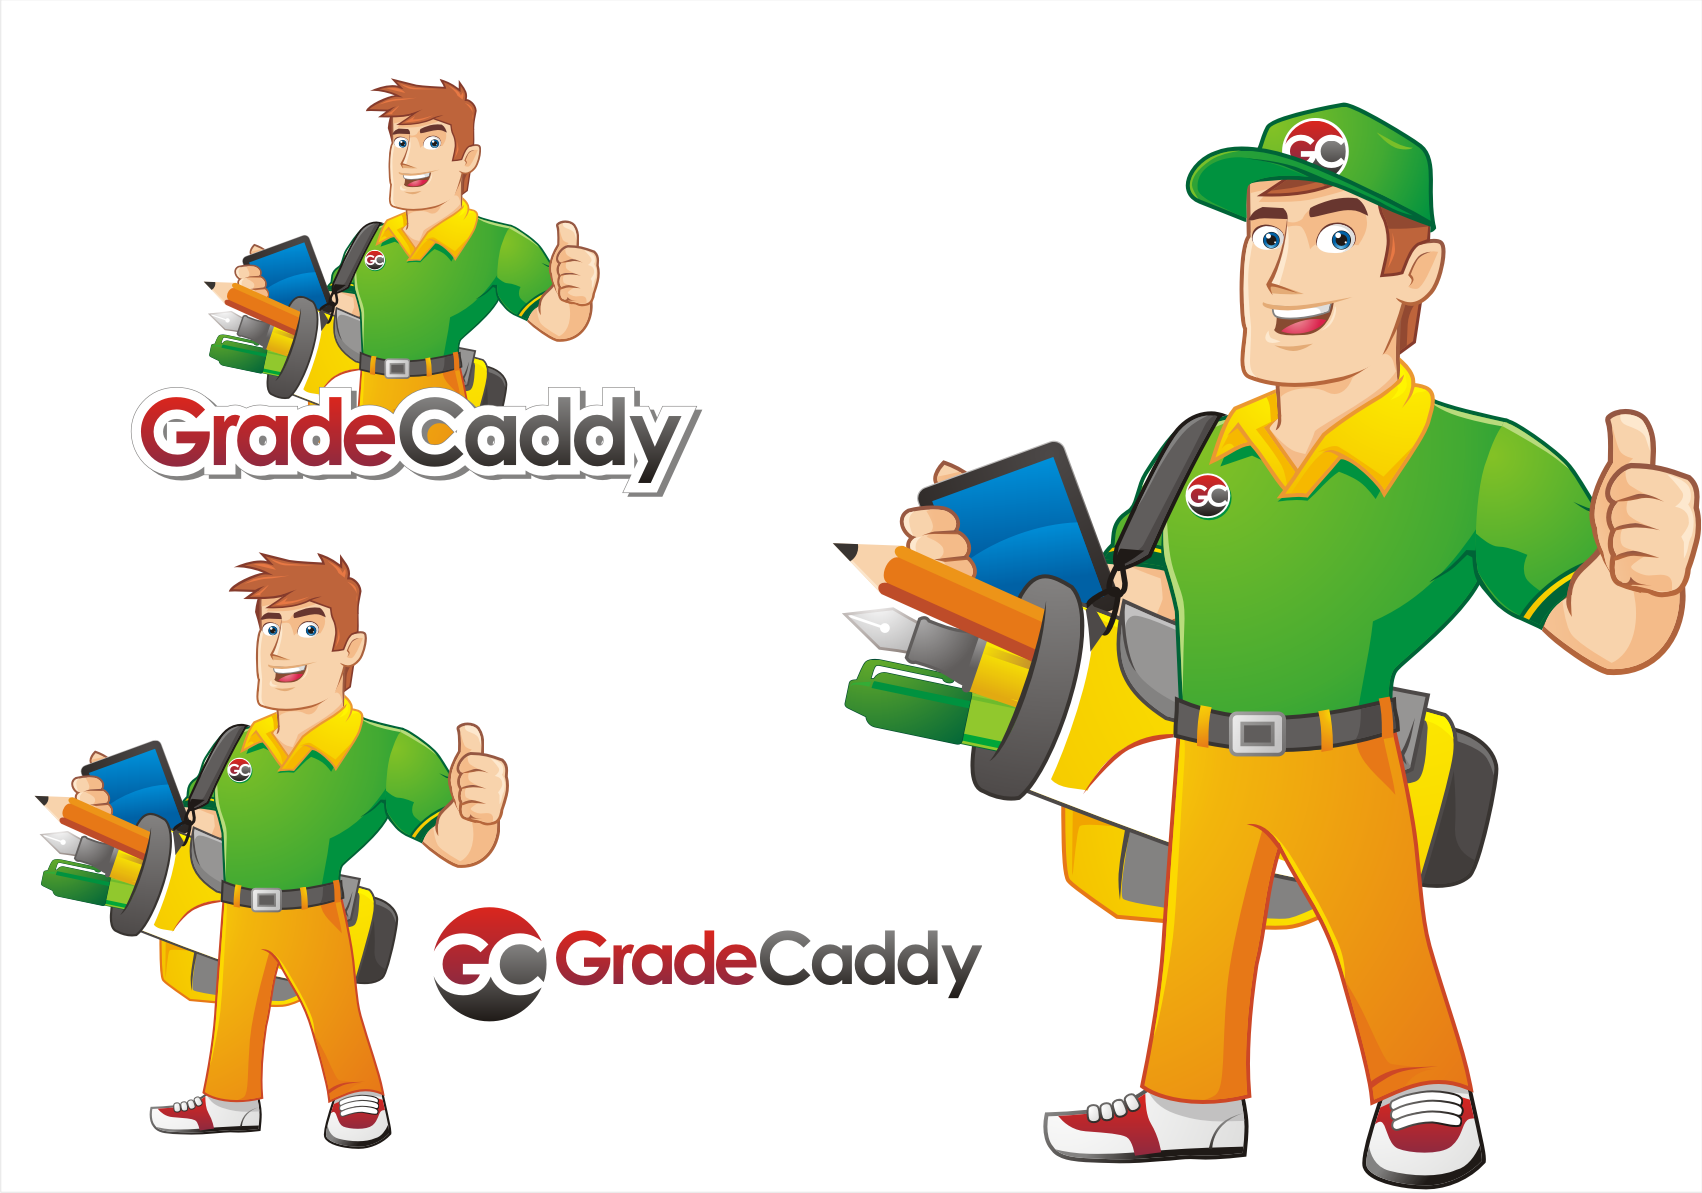 New logo wanted for GradeCaddy